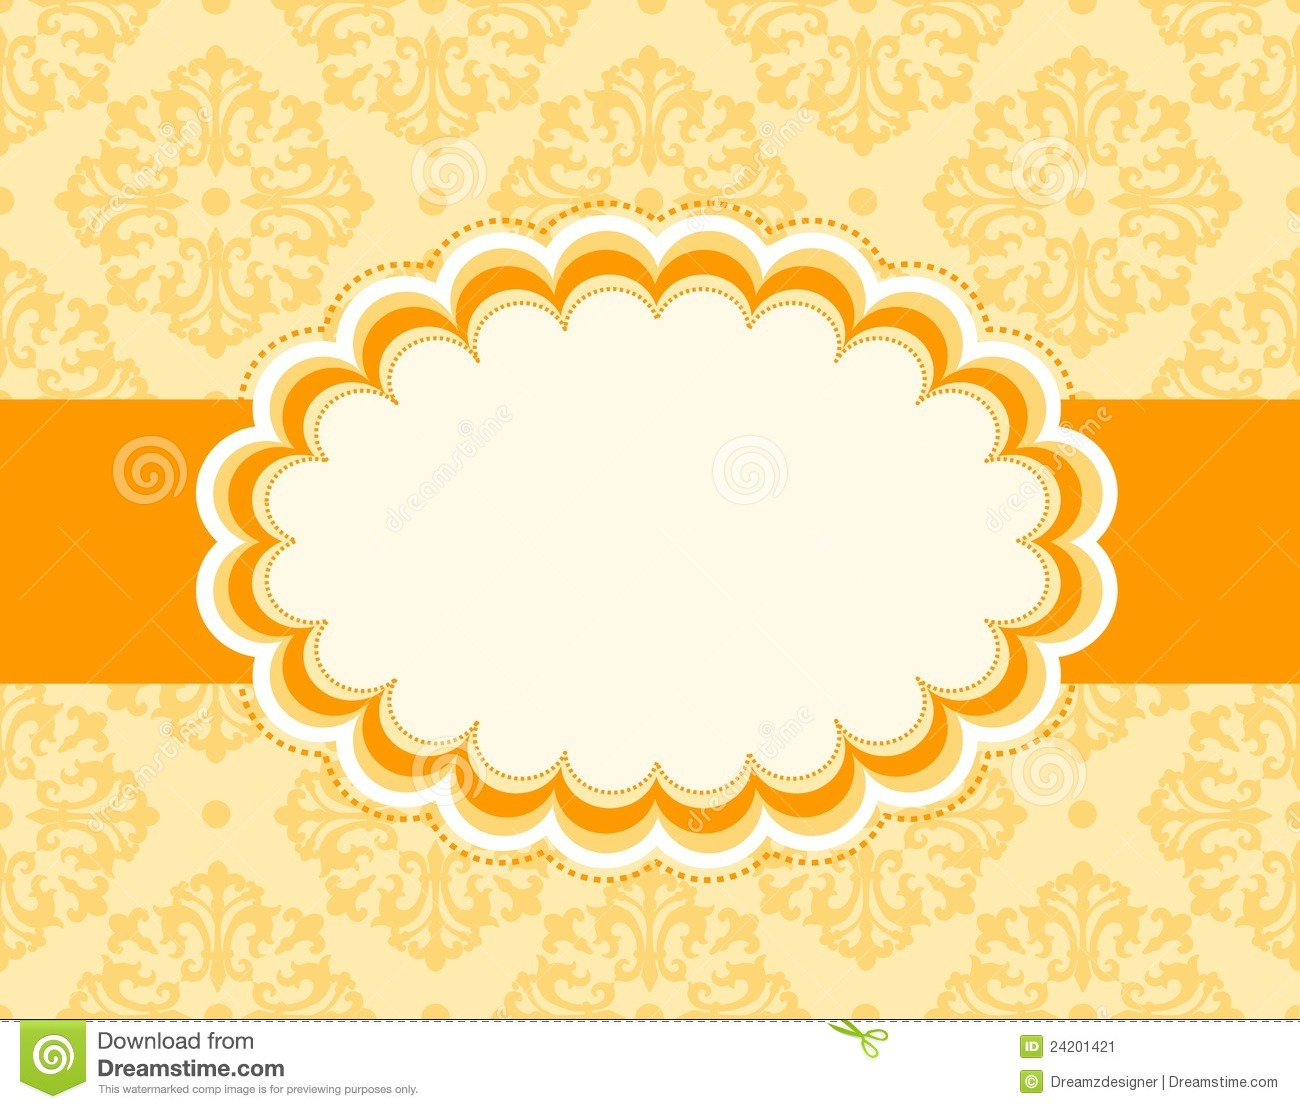 Orange retro wedding invitation/ anniversary background / frame design